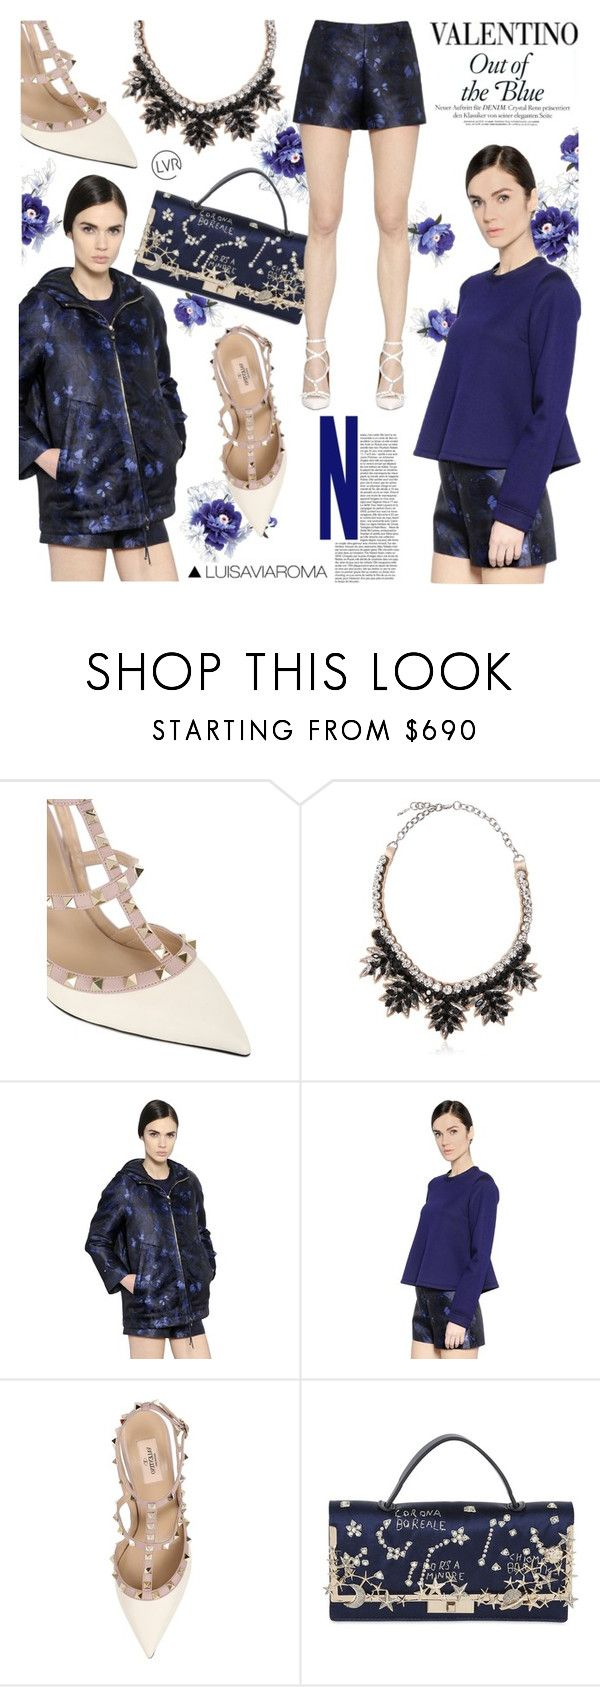 """Out of the Blue"" by luisaviaroma ❤ liked on Polyvore featuring Valentino, Blue, ROCKSTUD, luisaviaroma, lvr and Vaneltino"